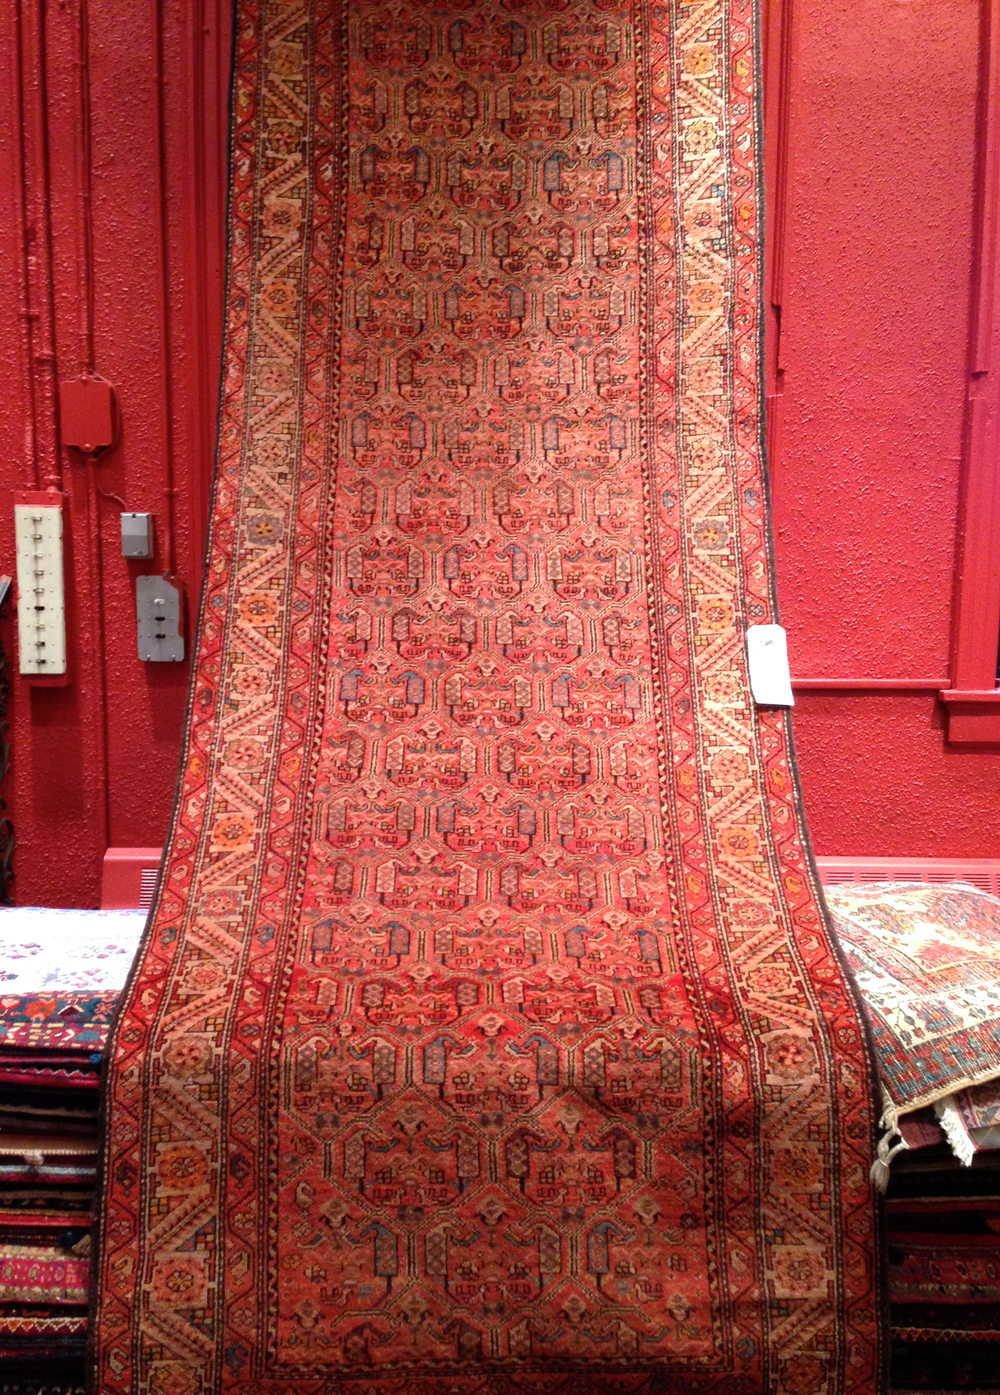 ABC Carpet - rustic wool from Iran